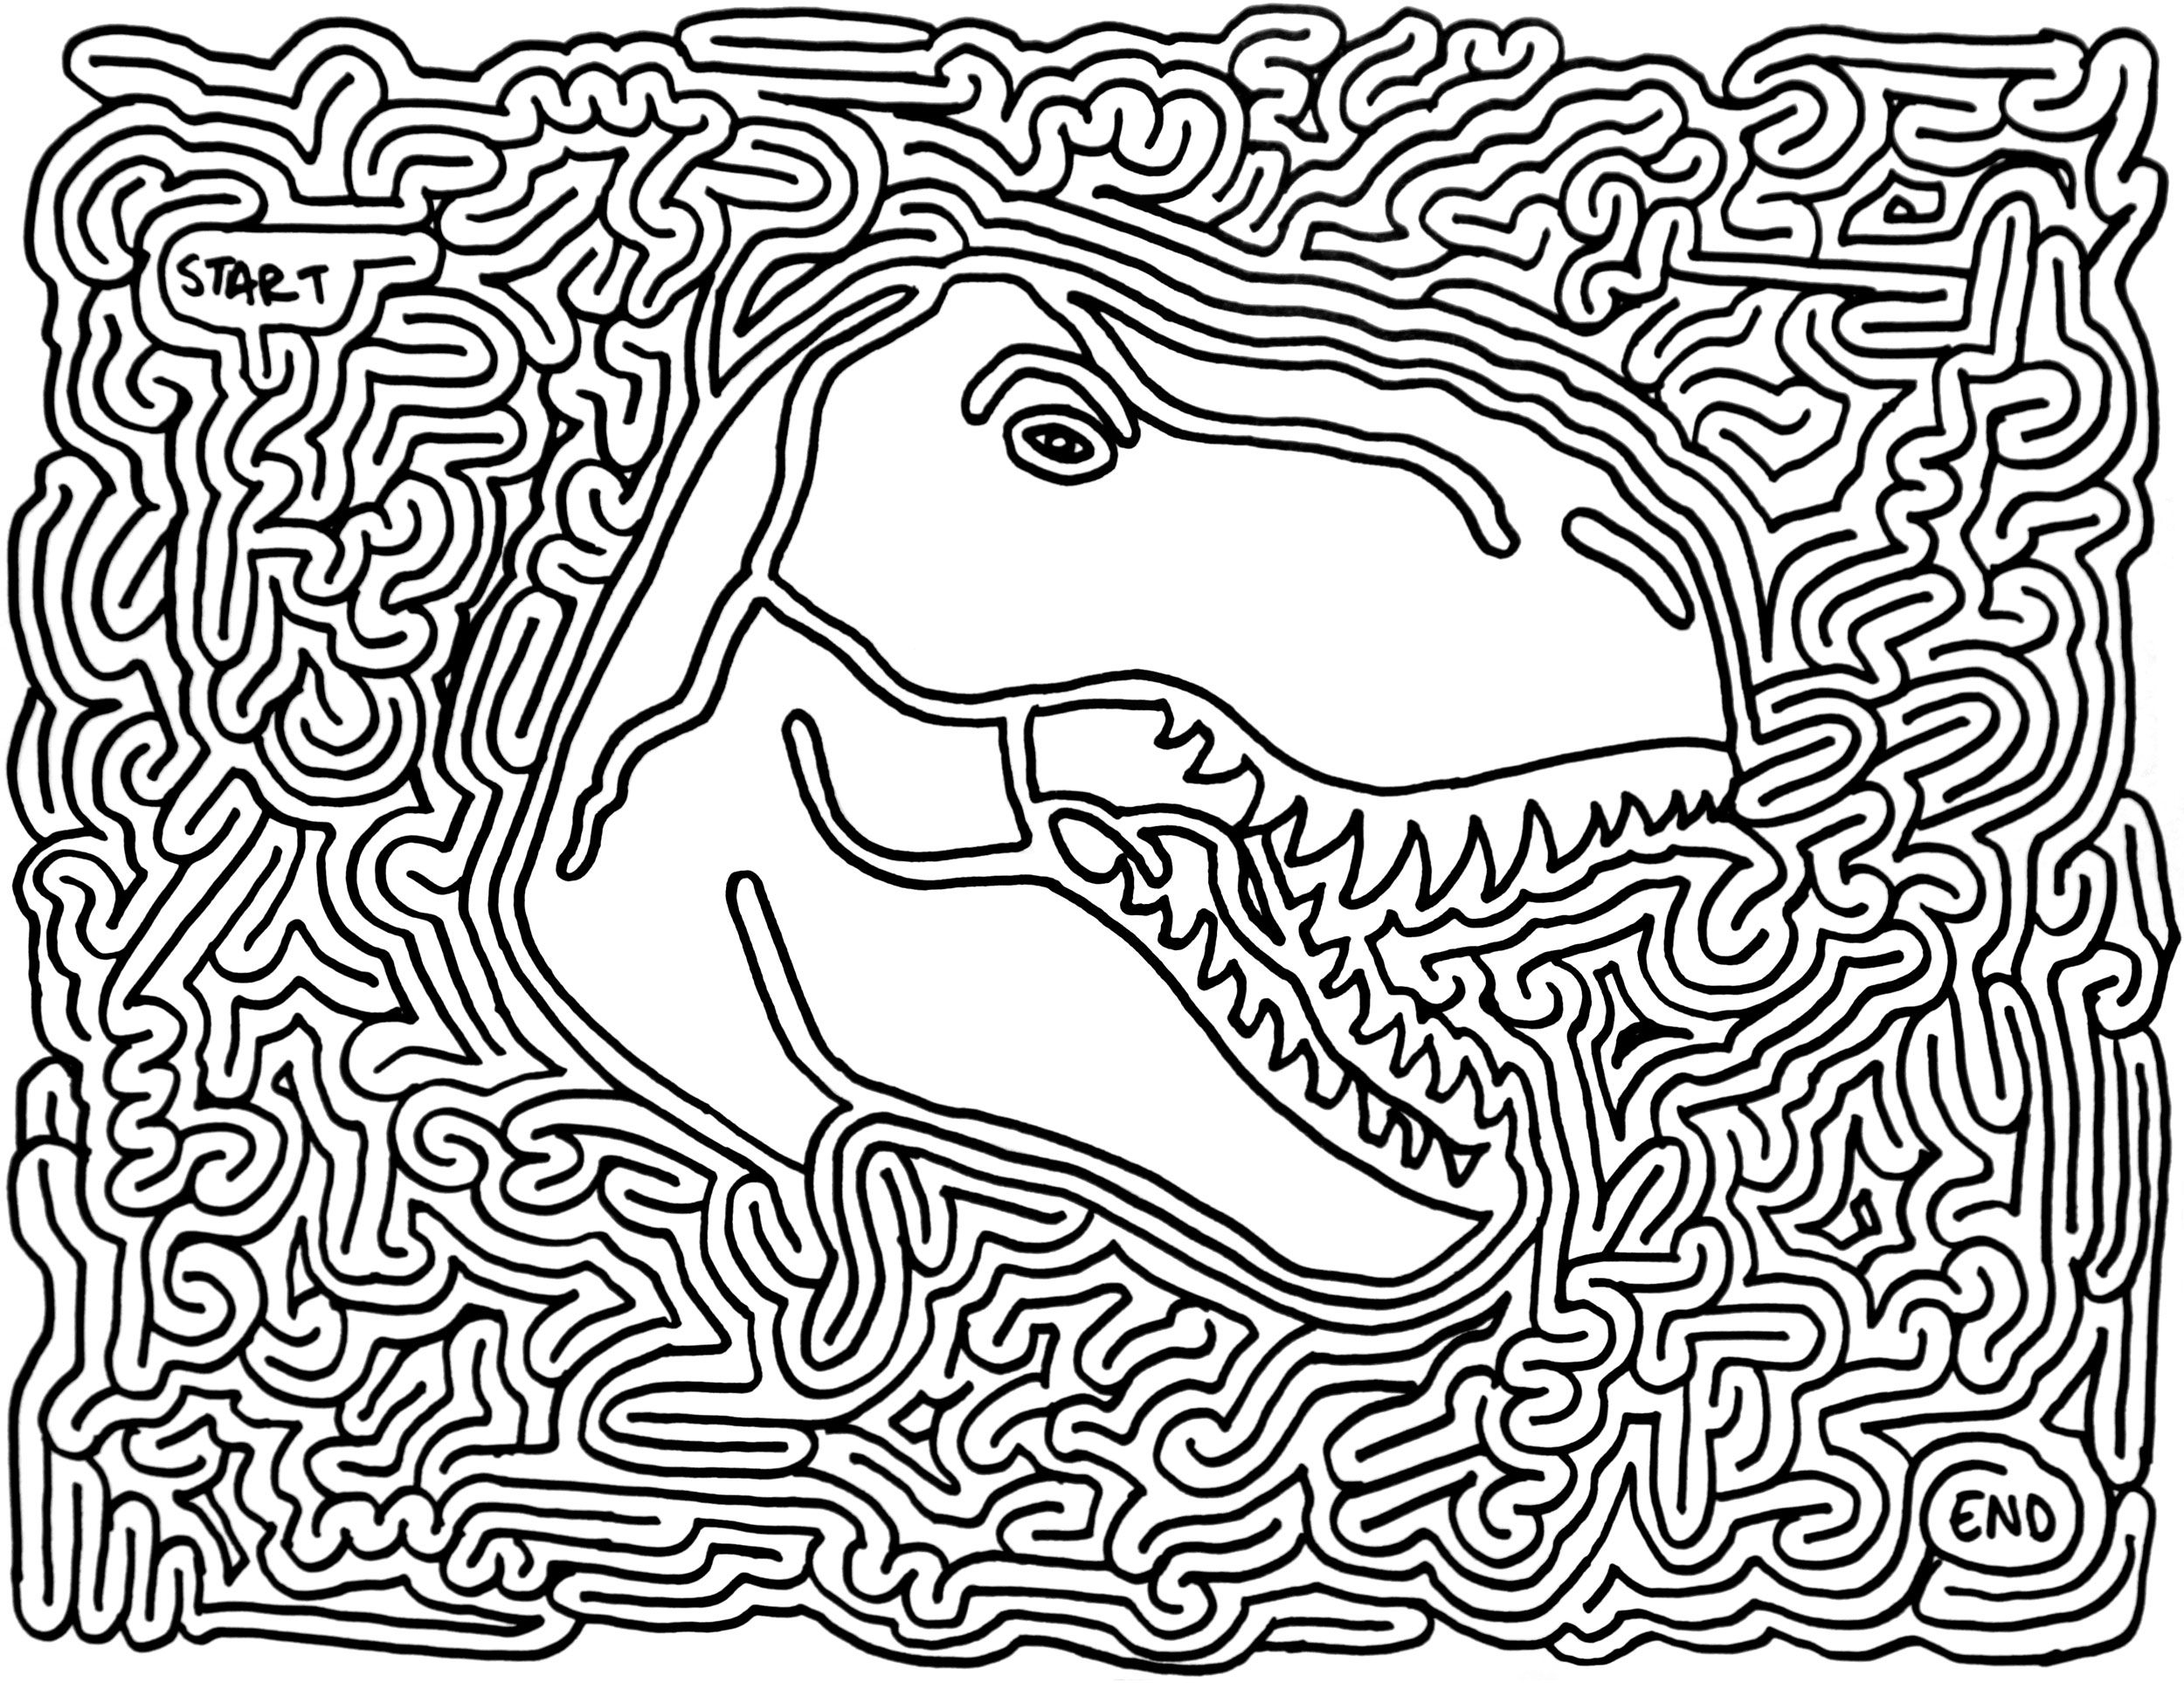 Printable Mazes - Best Coloring Pages For Kids - Printable Puzzles Mazes